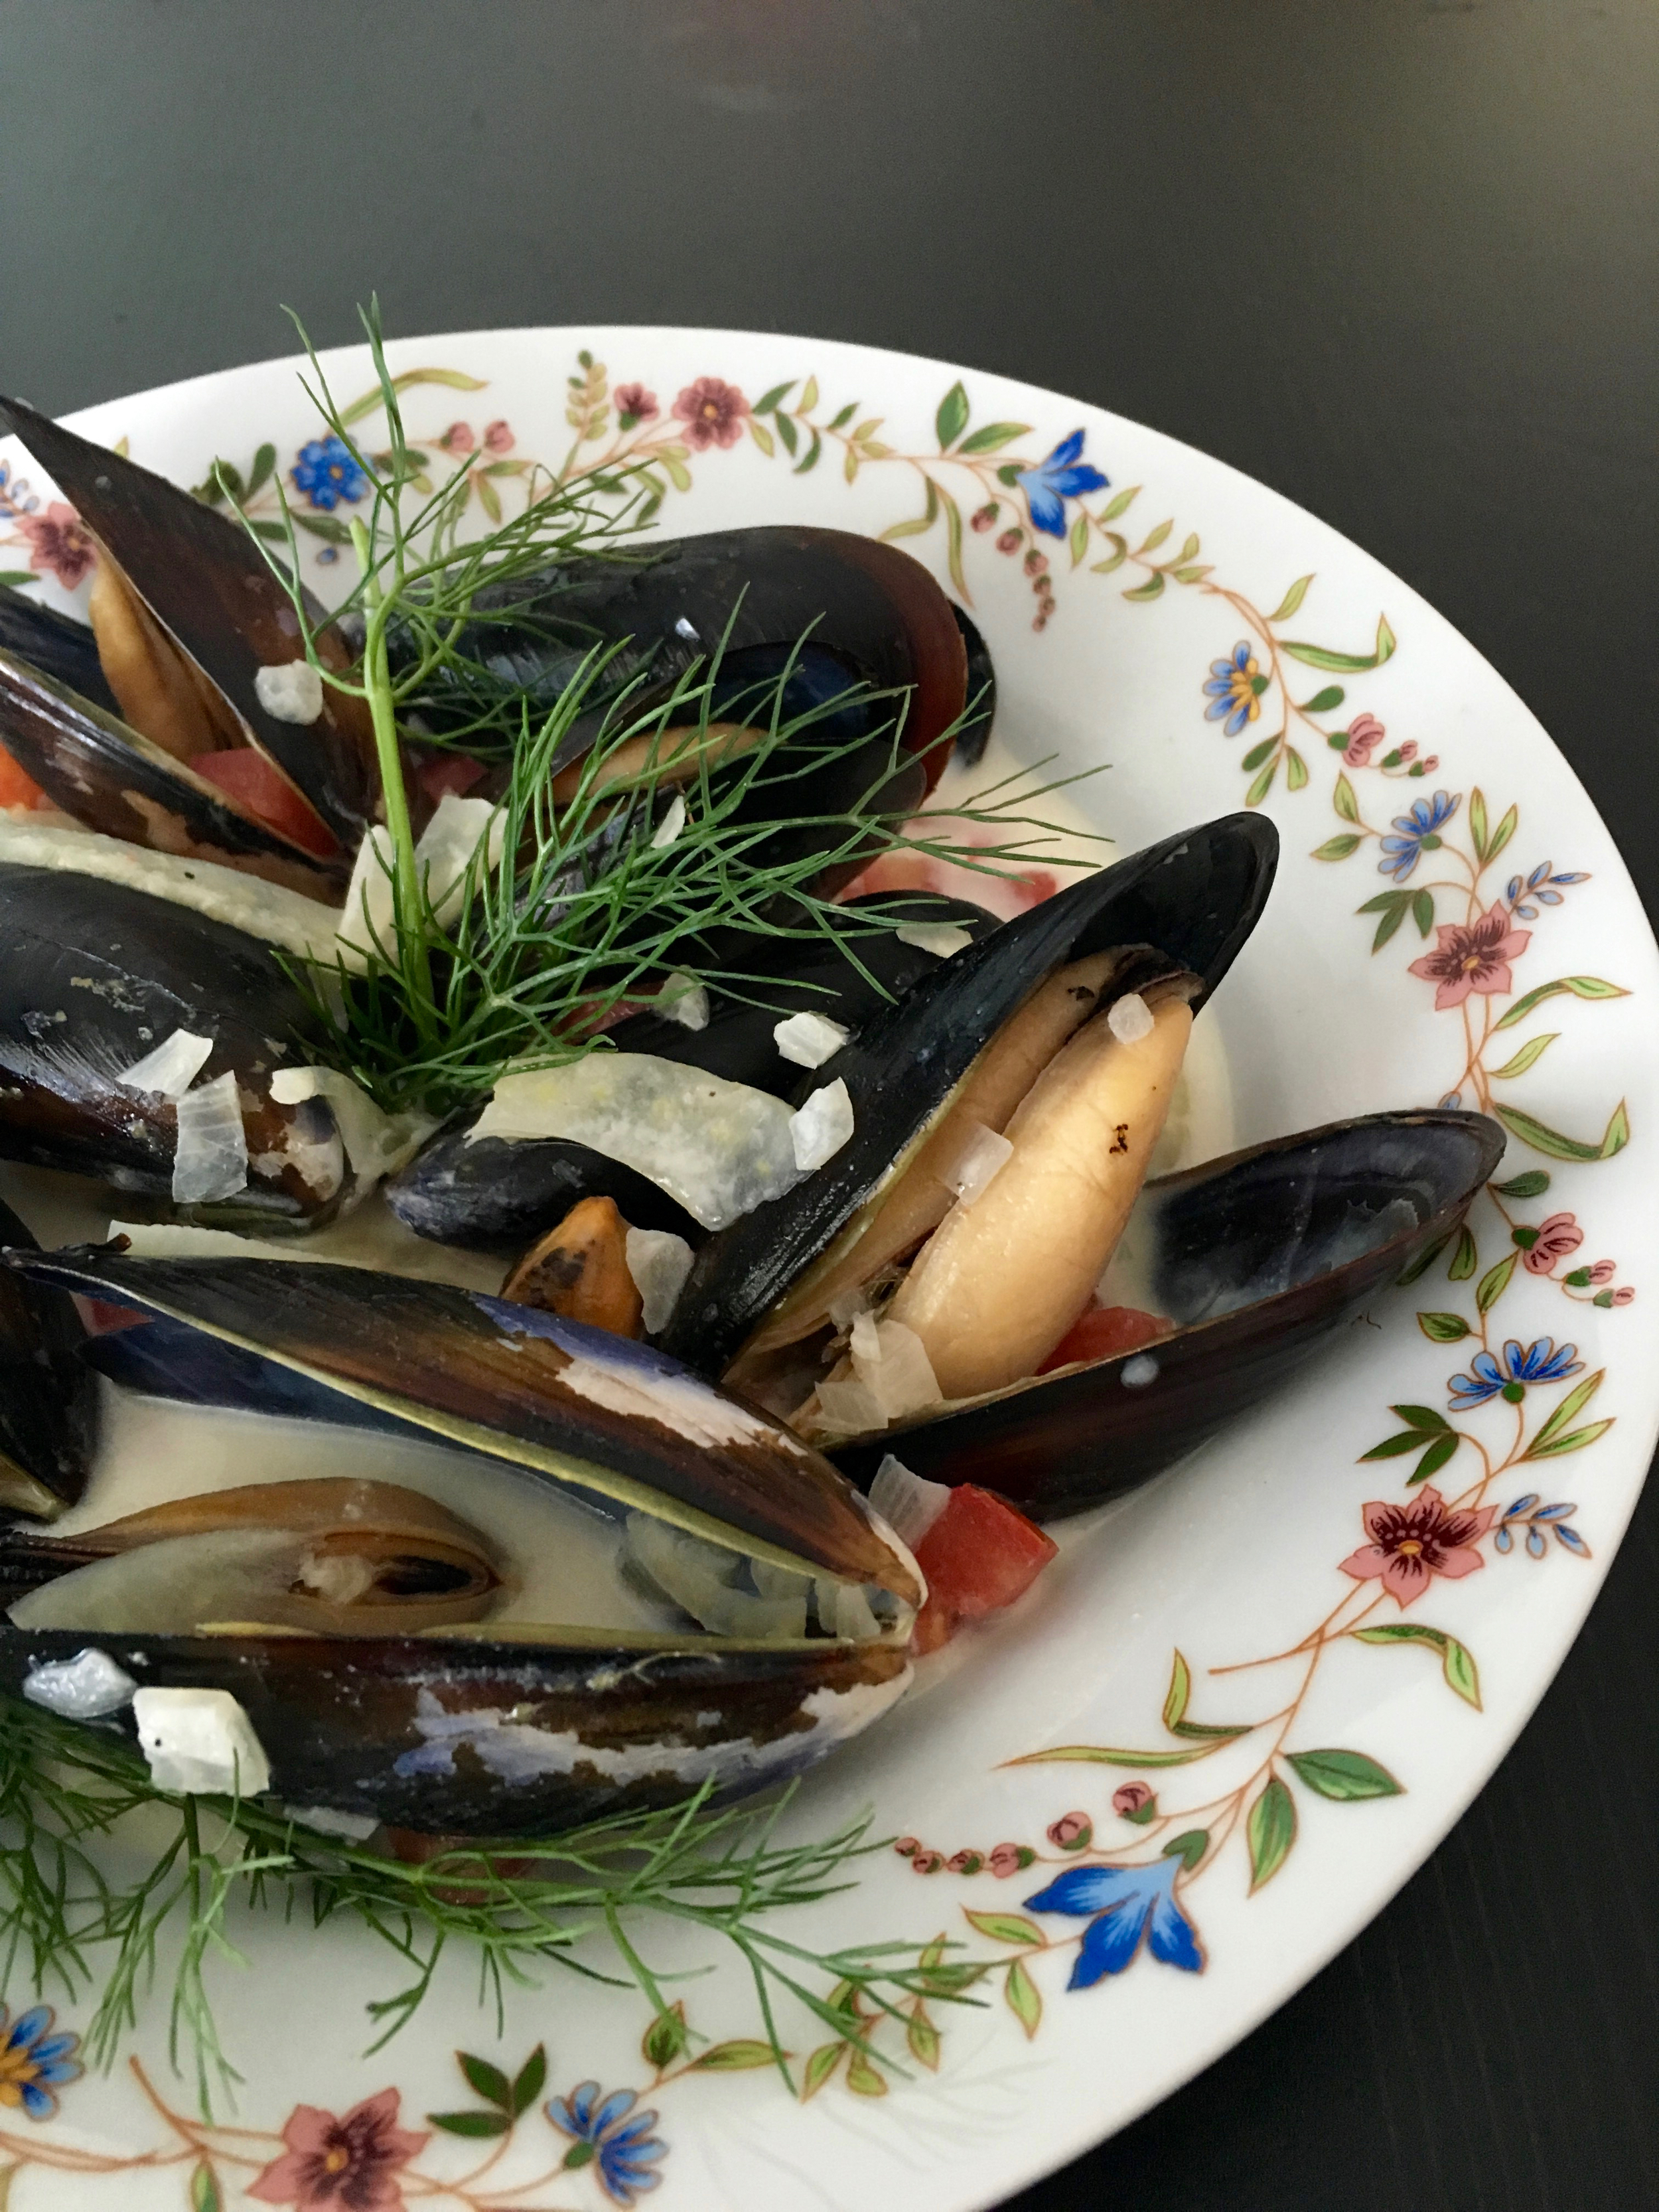 Roasted Mussels with Fennel